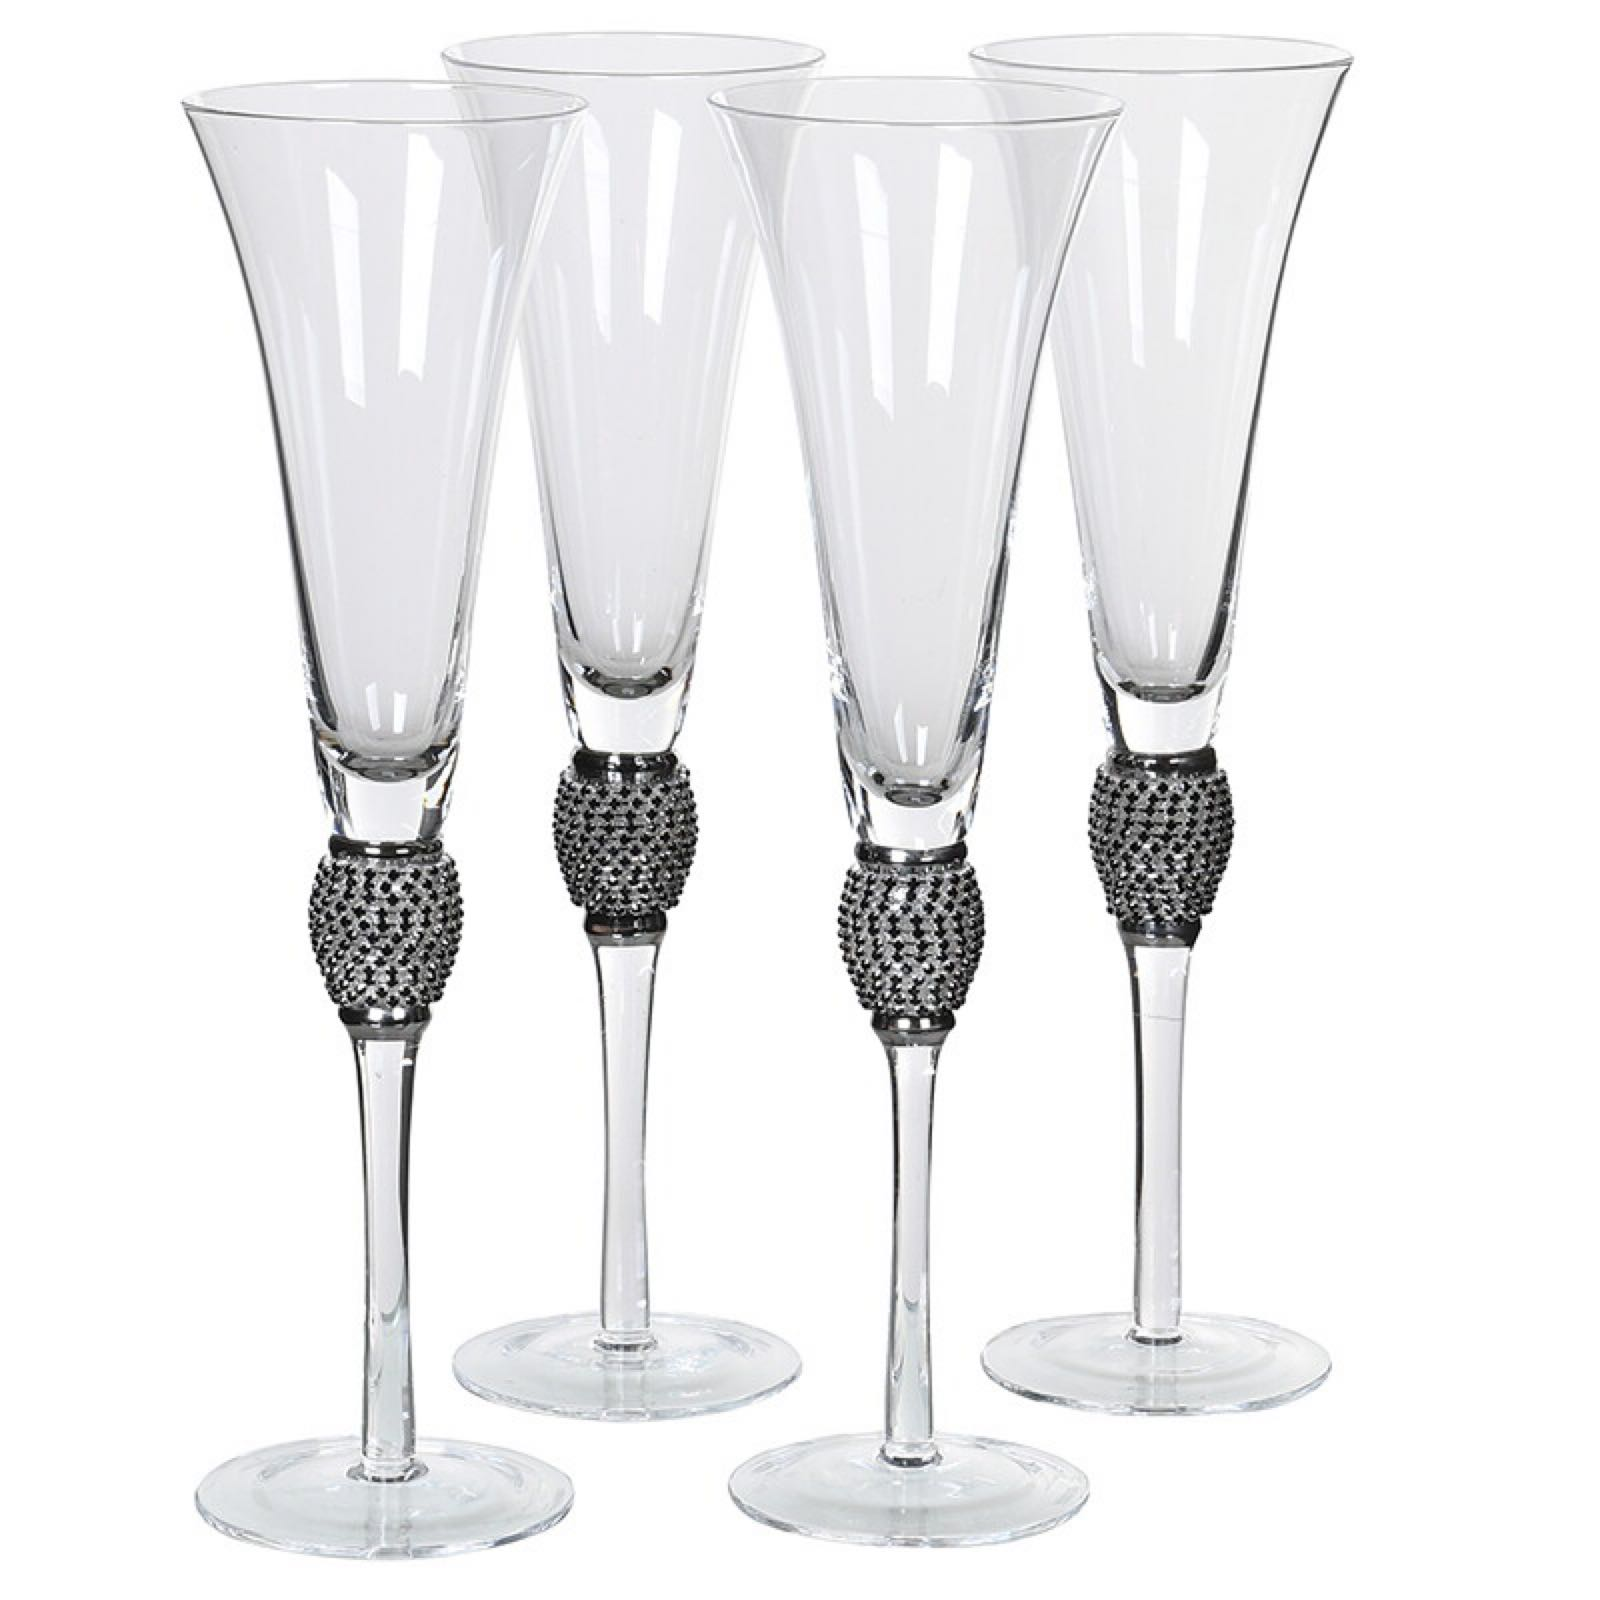 Pair of Champagne flutes with silver edging and crystals